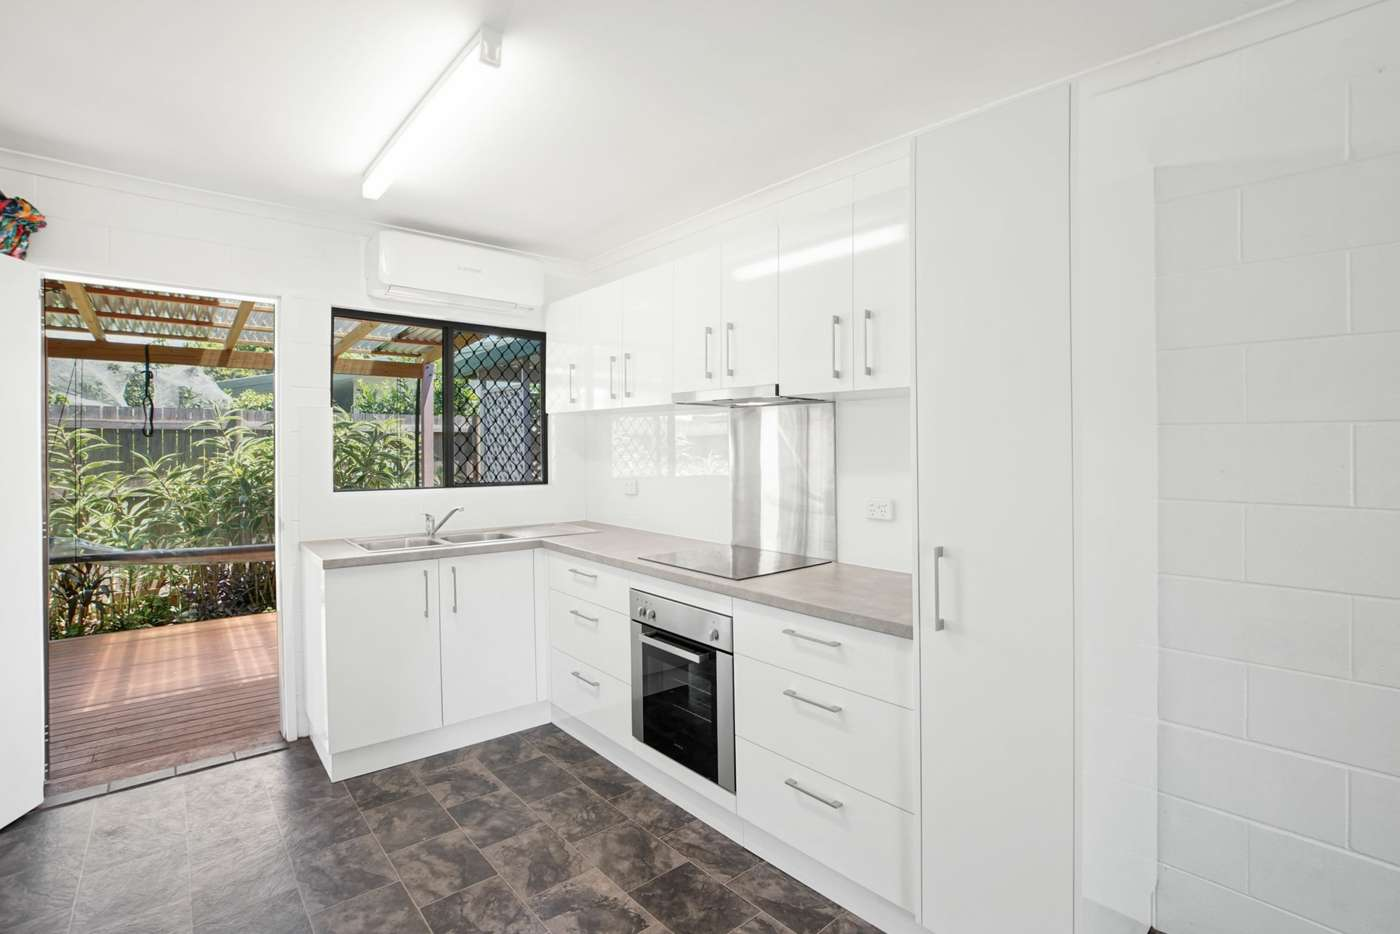 Sixth view of Homely unit listing, 4/40 Armbrust Street, Manoora QLD 4870